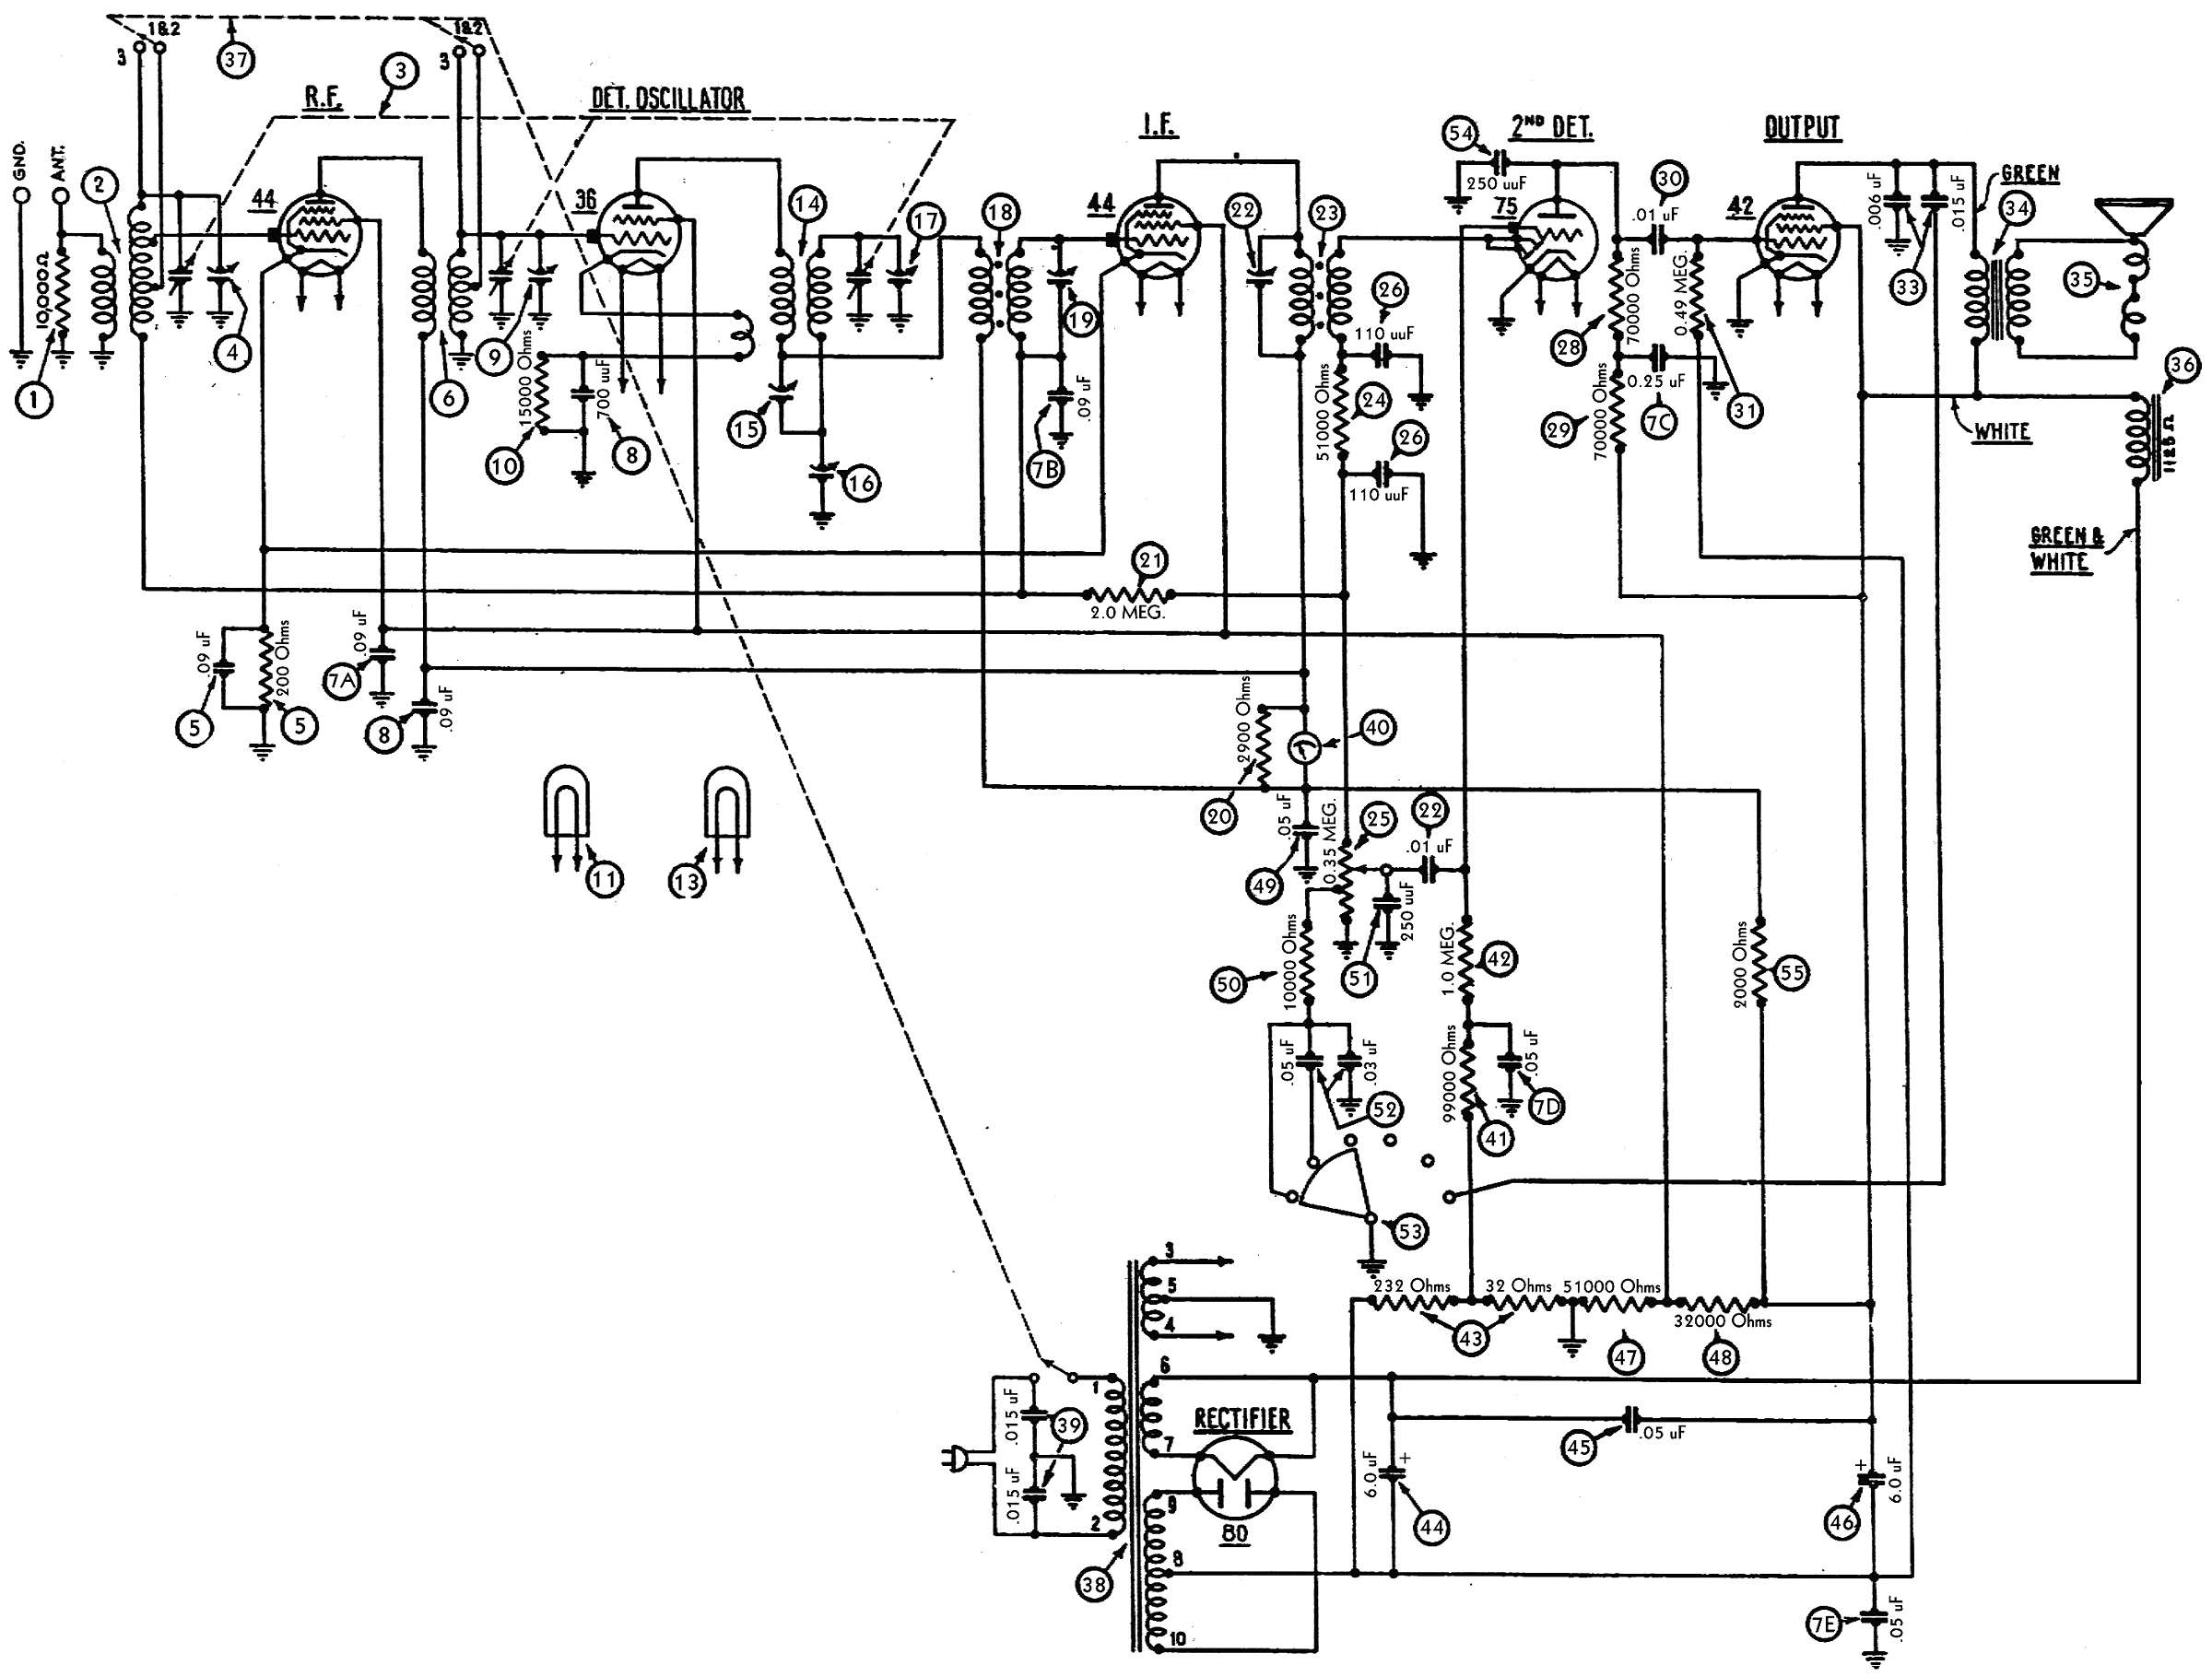 Philco Air Handler Wiring Diagram Libraries Fedders Electrical Diagrams Auto Diagramrelated With